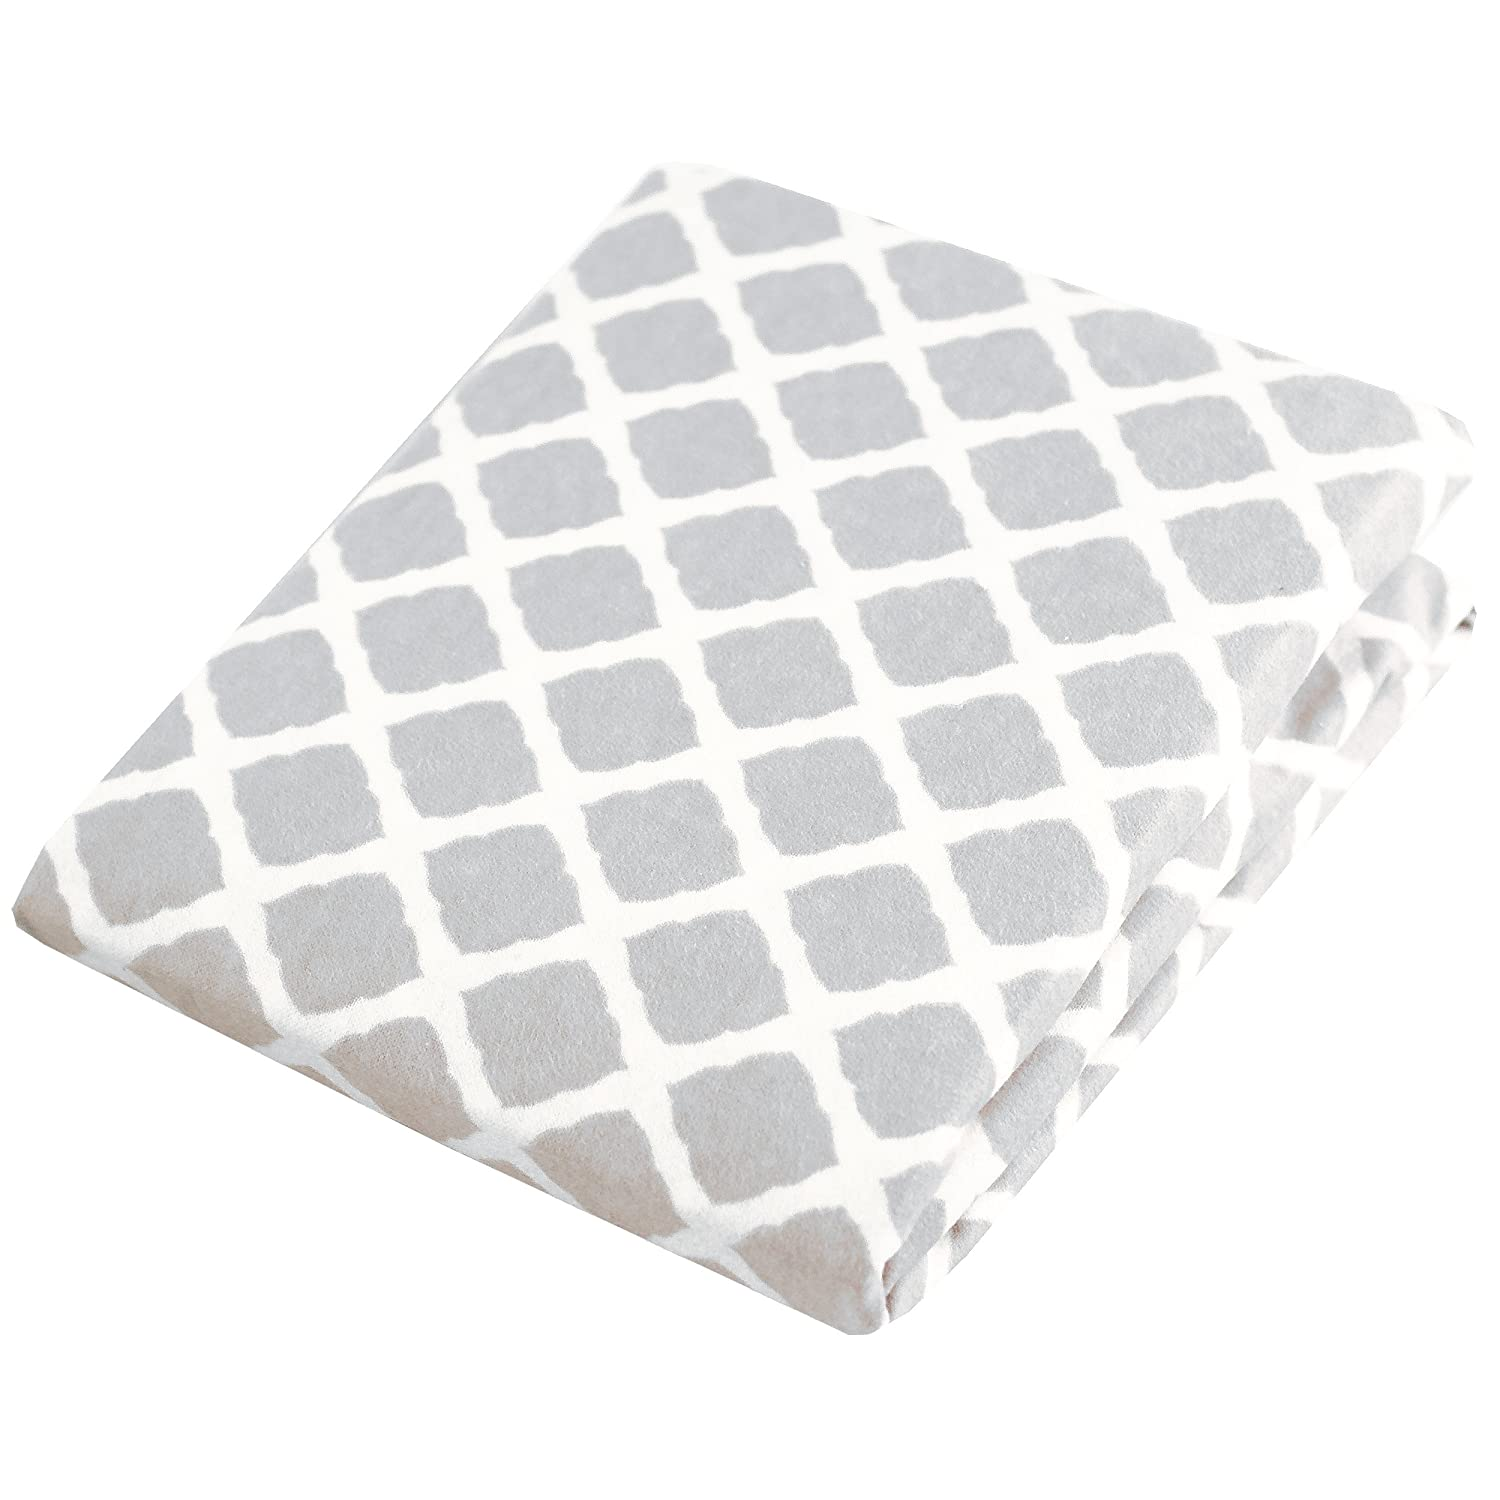 Kushies Changing Pad Cover for 1 pad, 100% breathable cotton, Made in Canada, Grey Lattice Kushies Baby S340-587